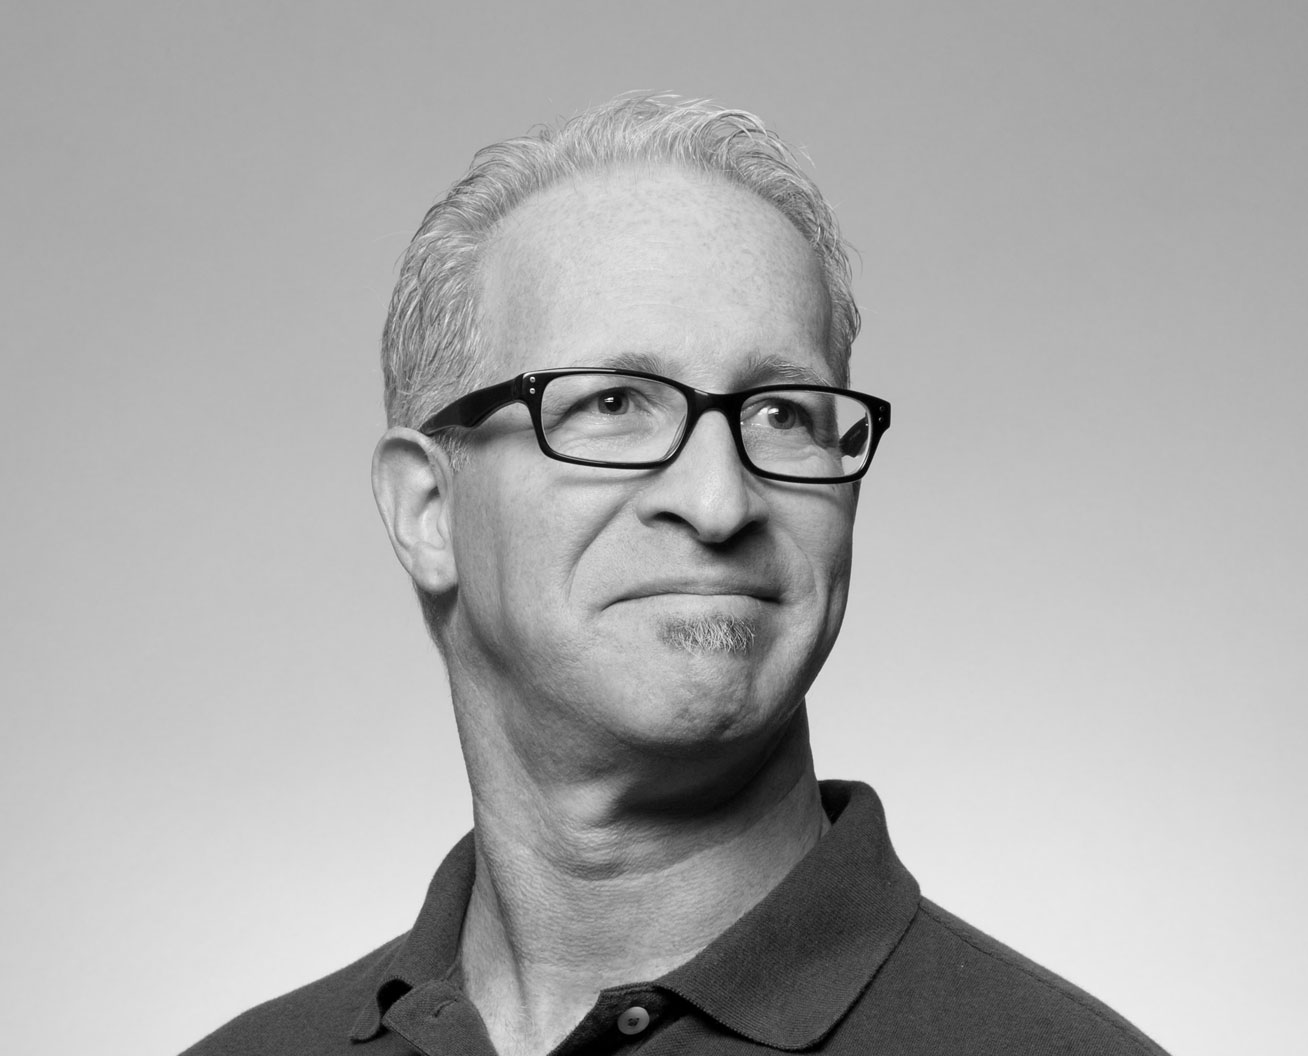 Portrait shot of a middle-aged man wearing spectacles